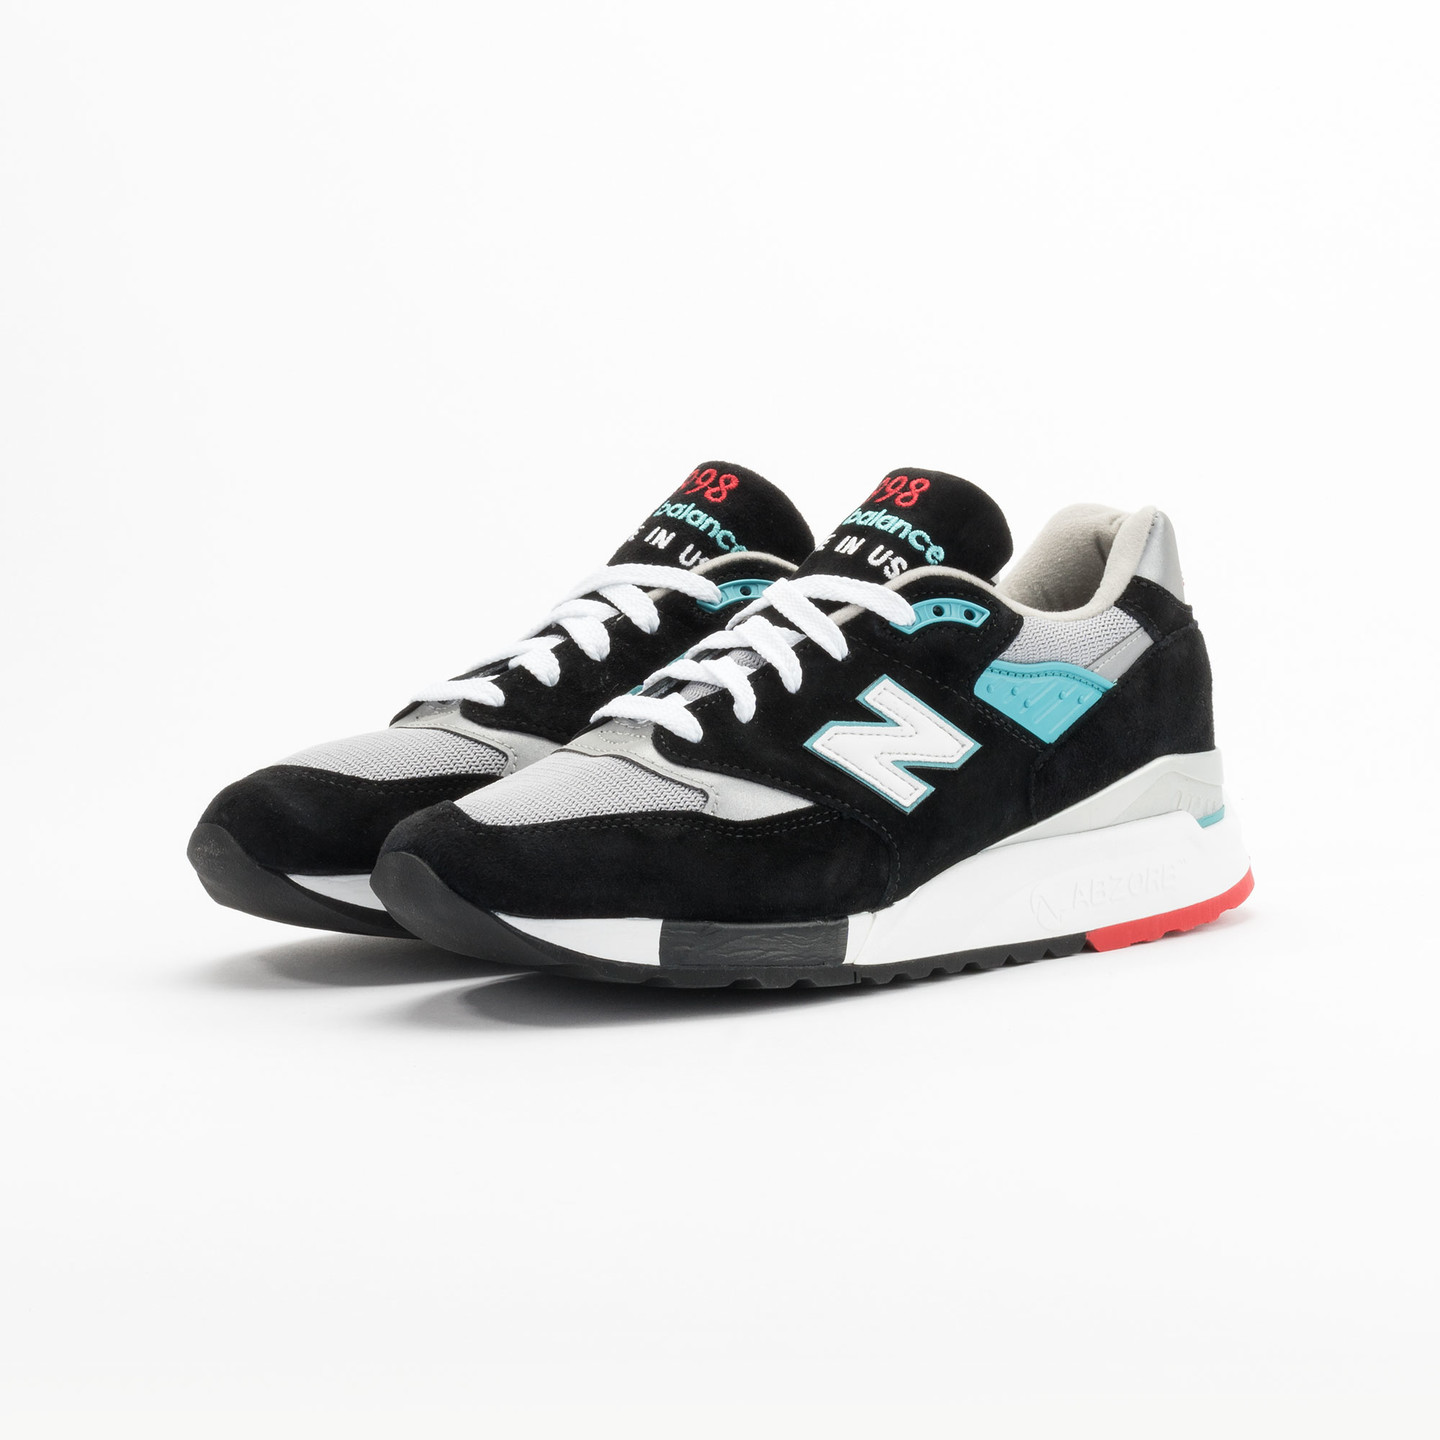 New Balance M998 CBB - Made in USA Black / Grey / Turquoise M998CBB-45